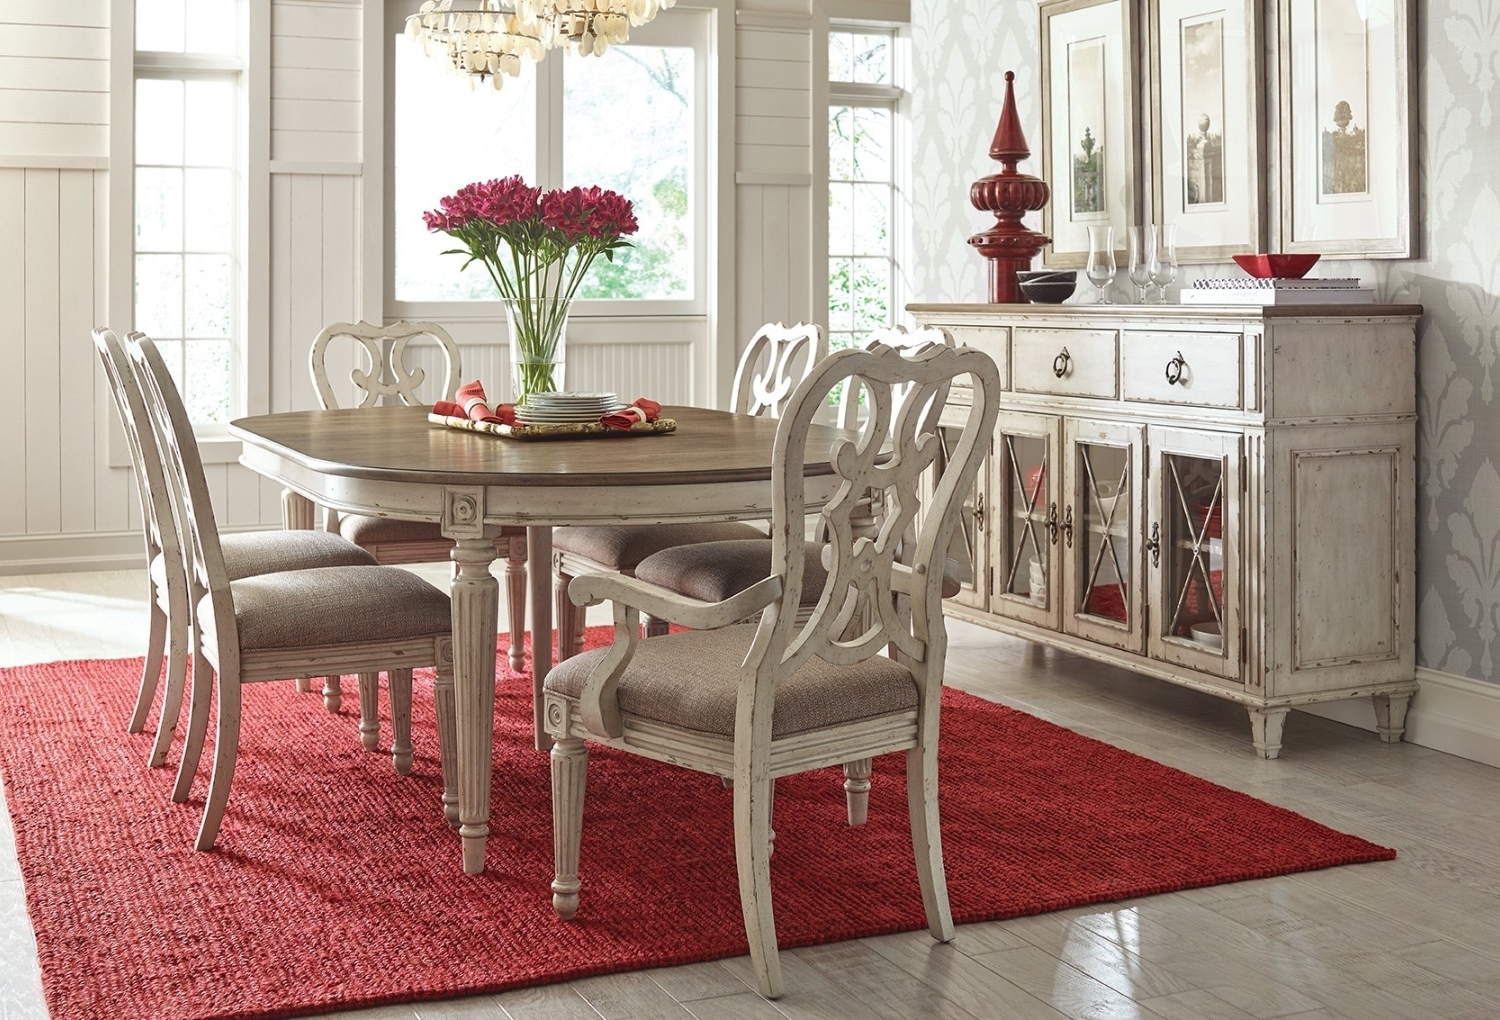 Sofa Chairs With Dining Table Regarding Best And Newest Drew Furniture Of North Carolina (View 18 of 20)